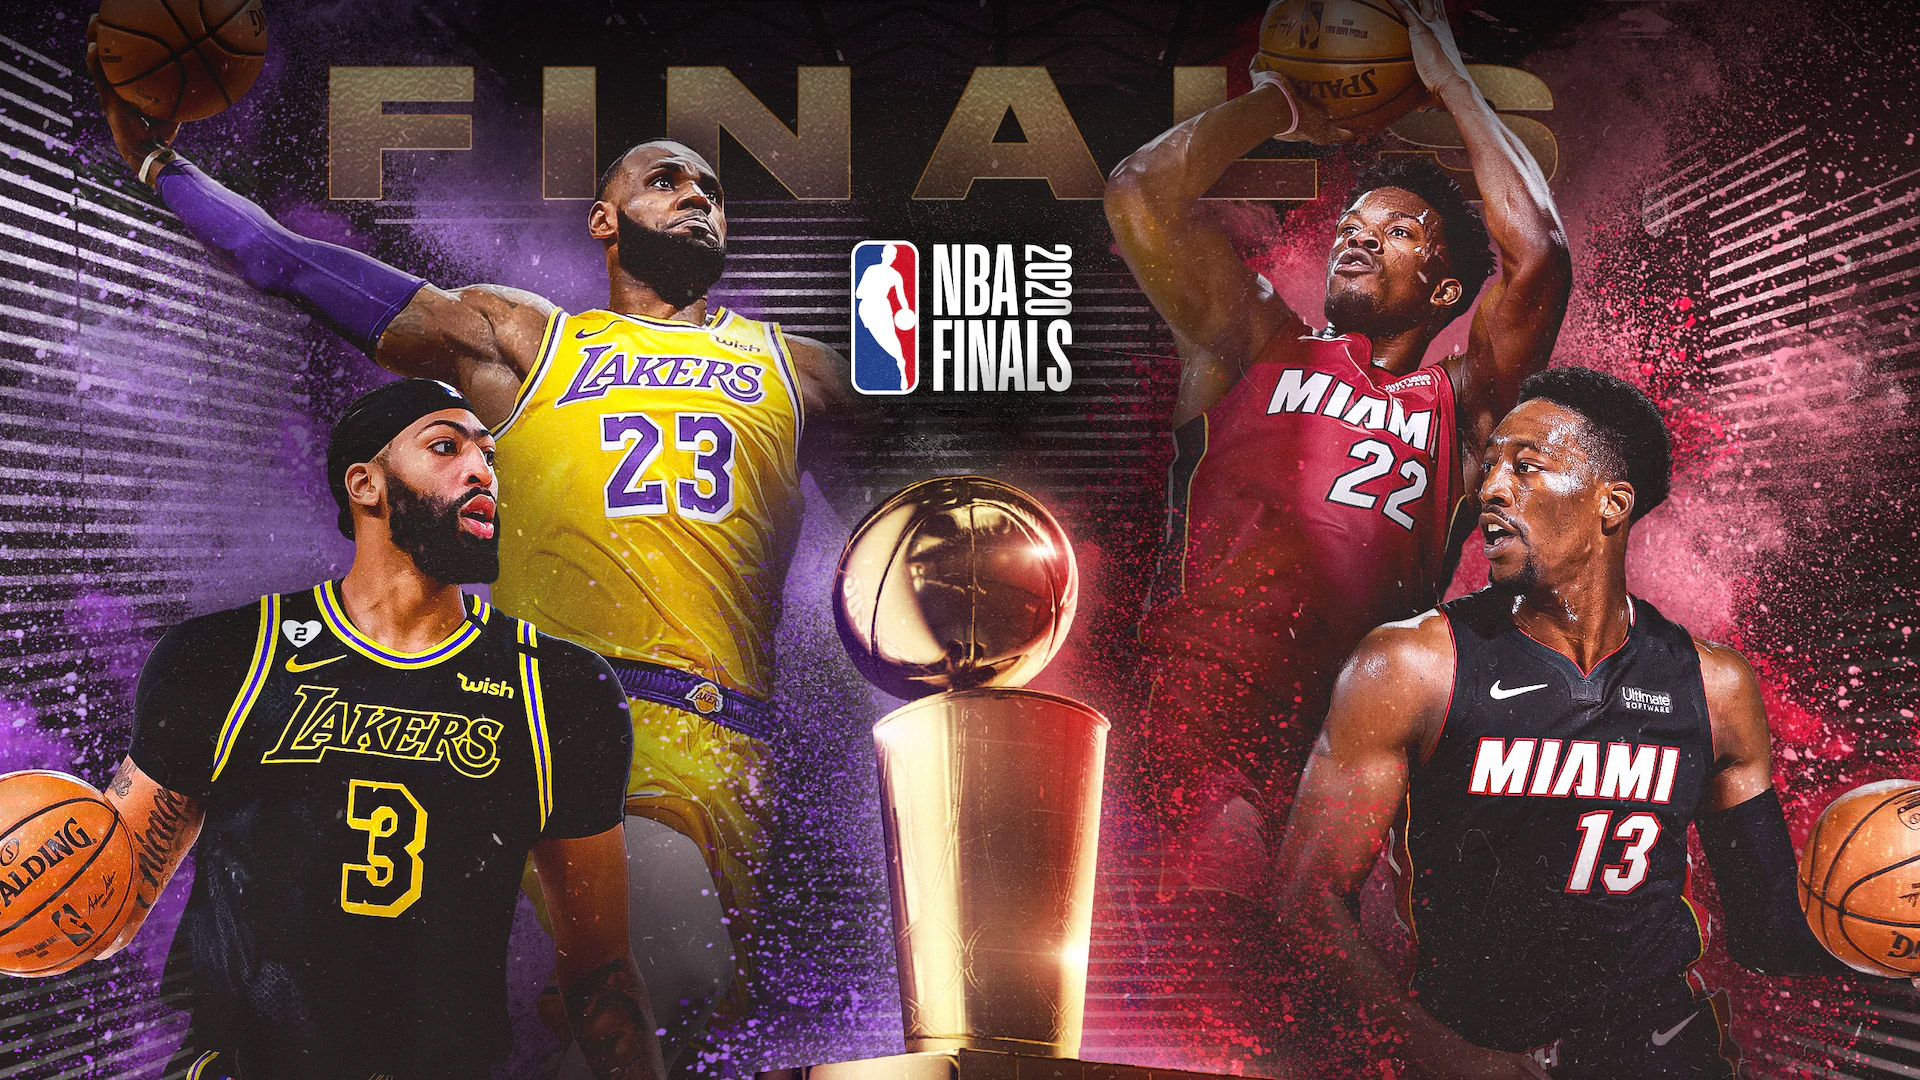 Lakers vs Heat nba final game 5 live free